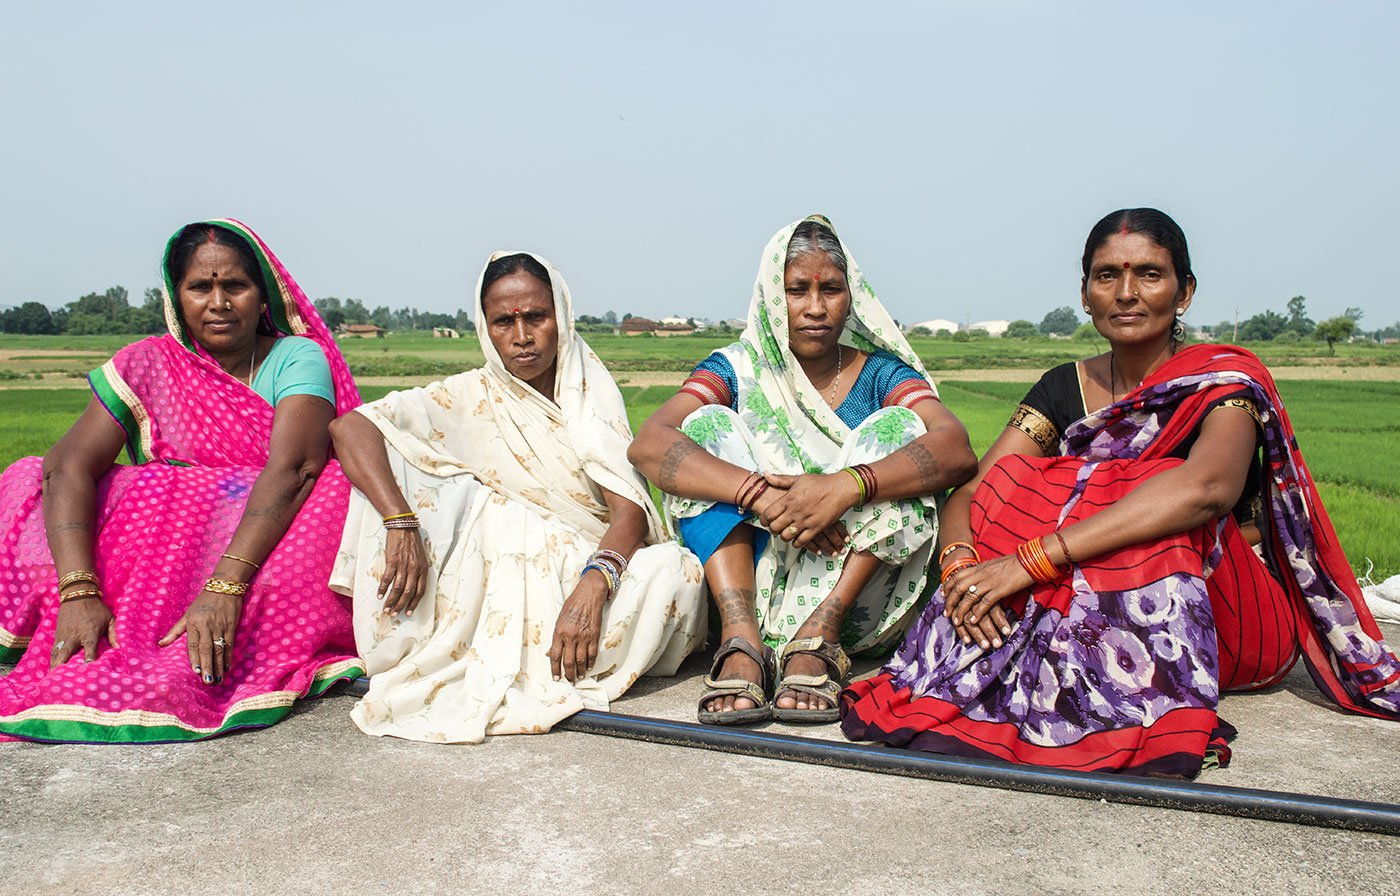 The women from All India Union for Forest Working People. Left to right: Lalti, Rajkumari, Sukalo, Shoba